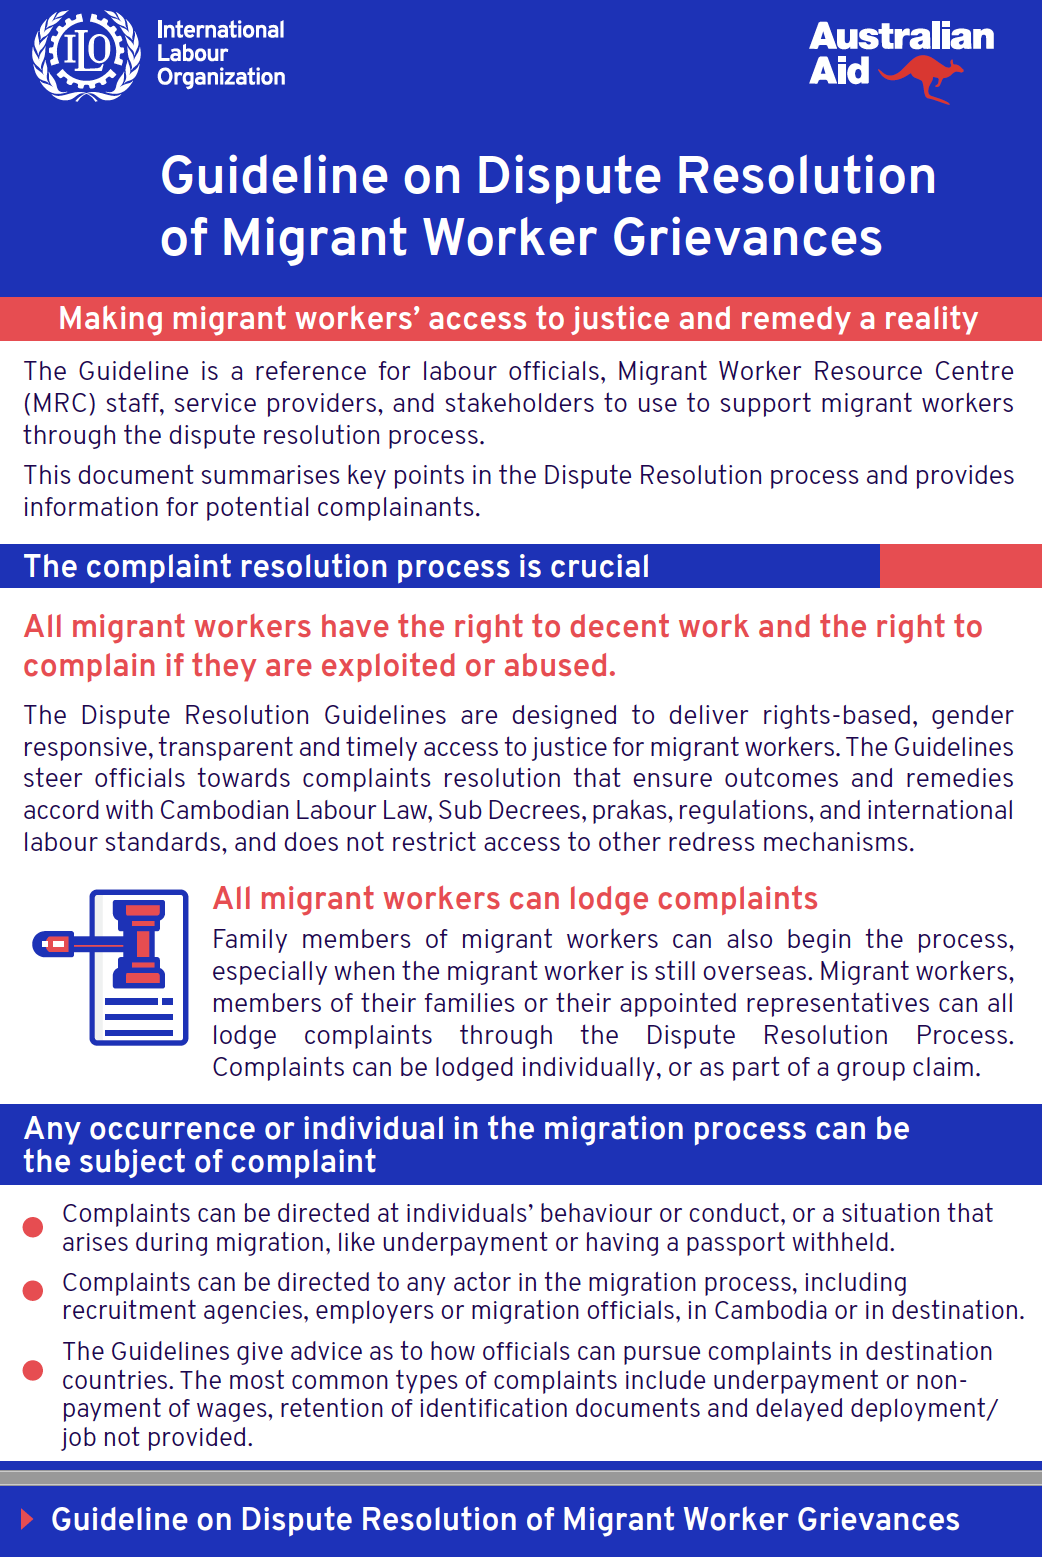 Guideline on Dispute Resolution of Migrant Worker Grievances